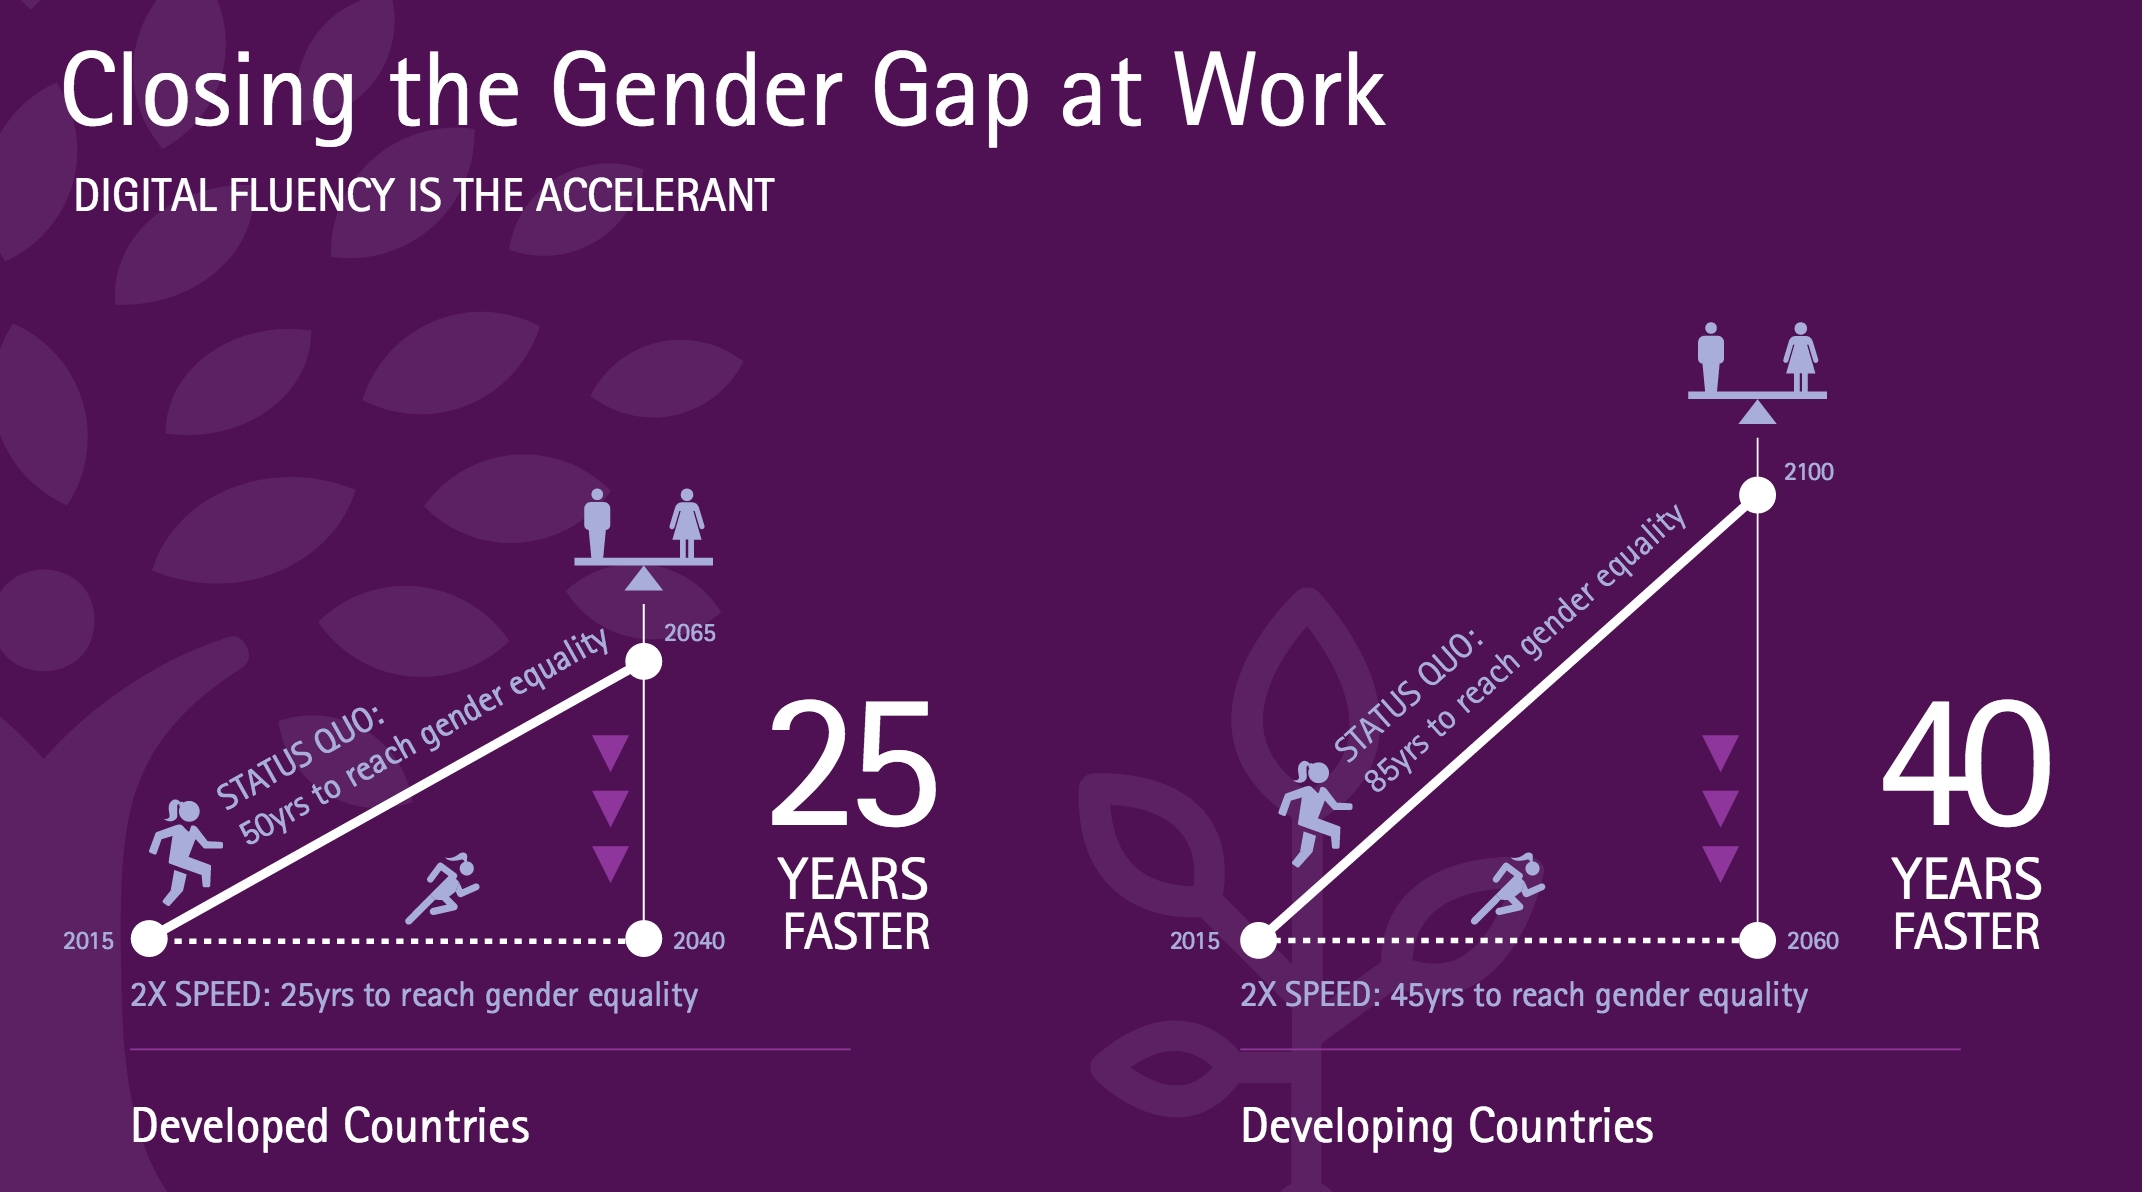 Source: Getting to Equal: How Digital is Helping Close the Gender Gap at Work, Accenture 2016